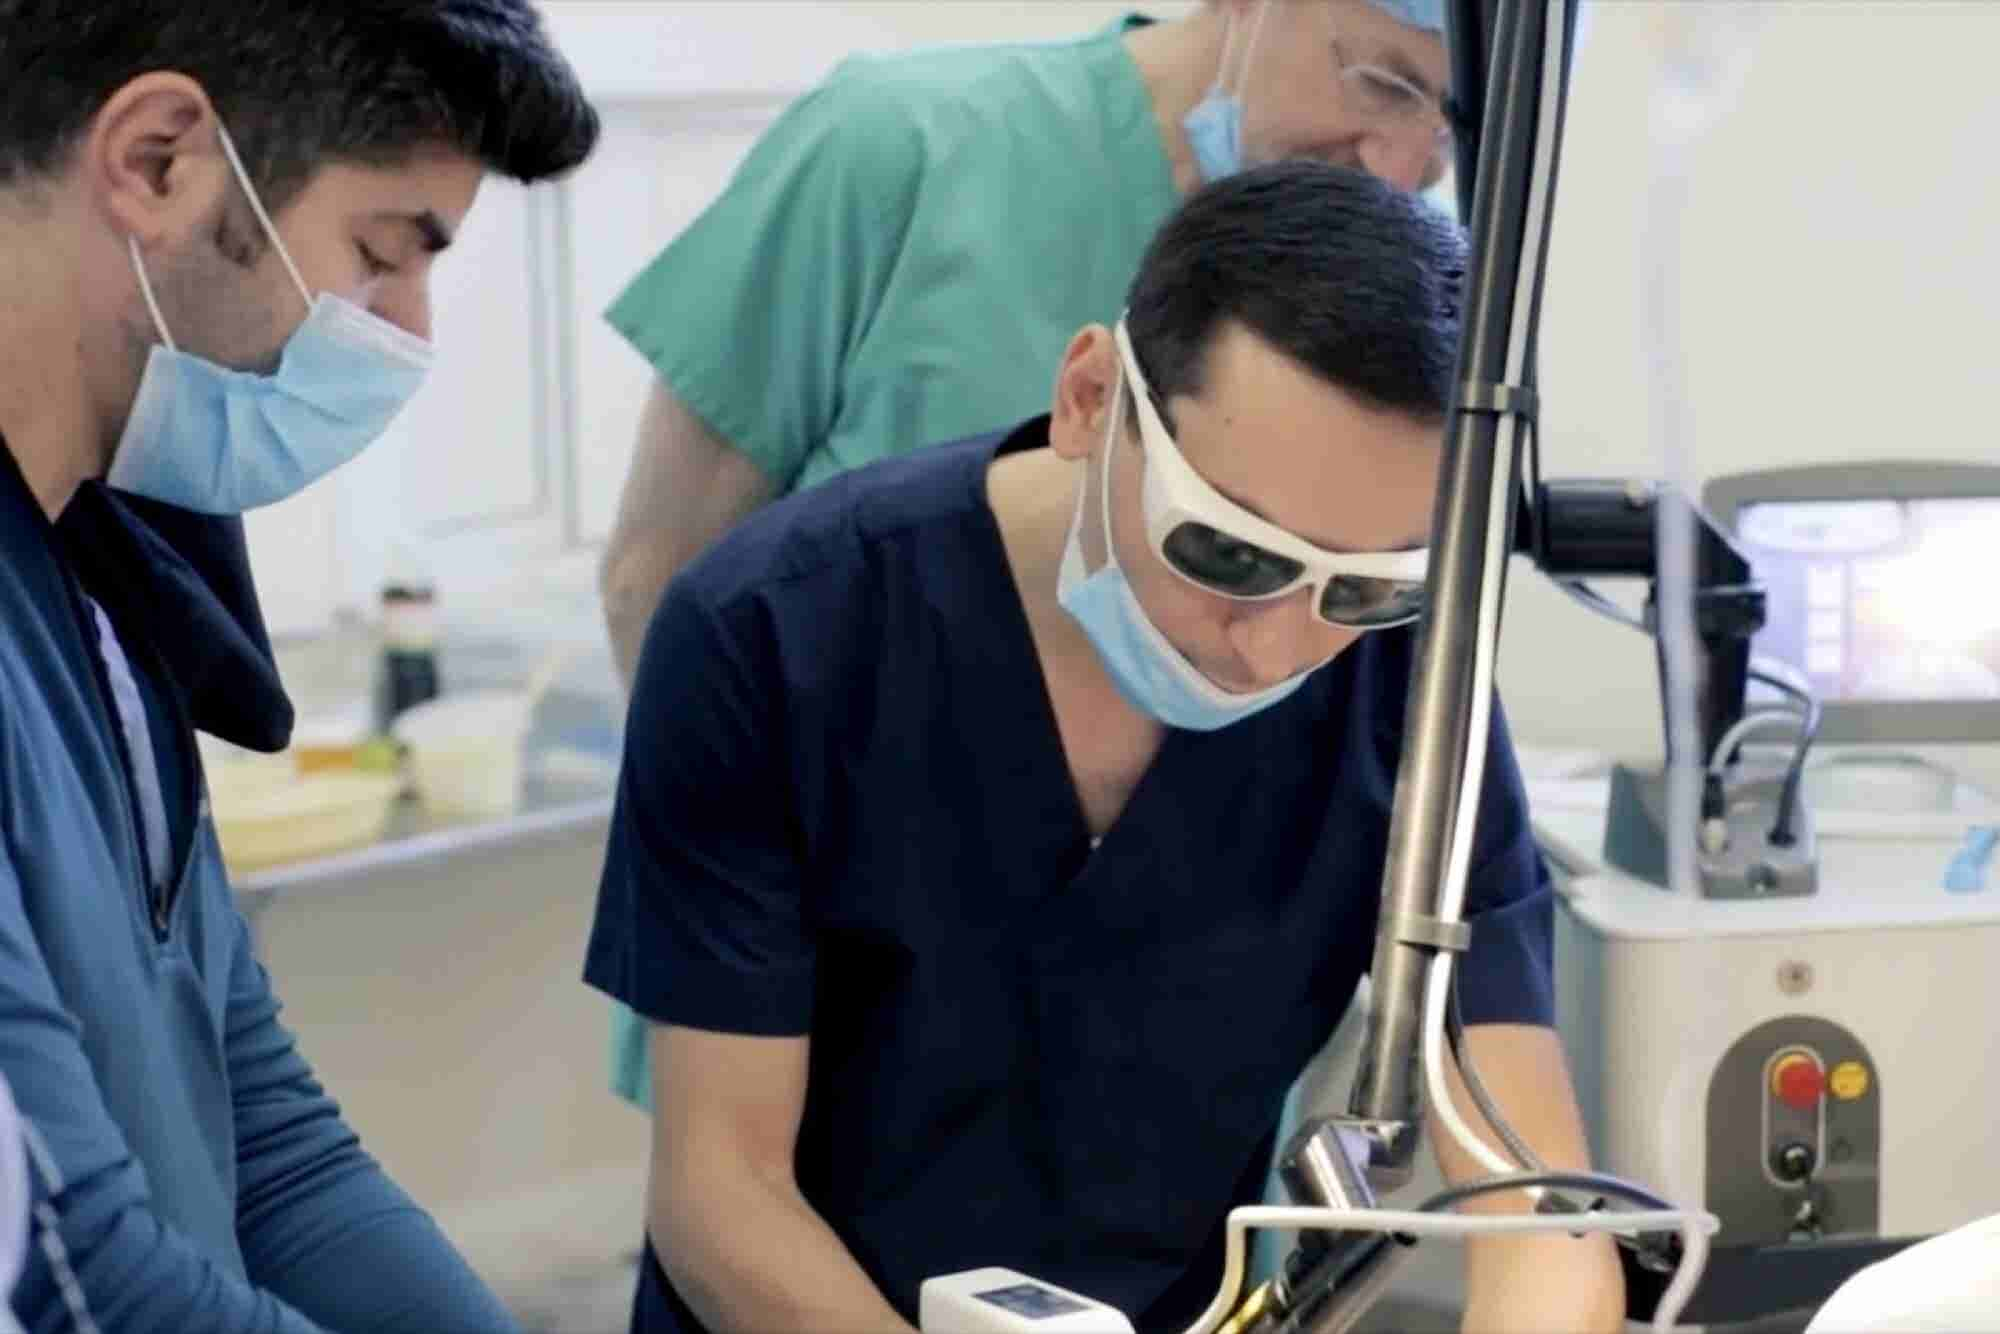 When Burn Victims Needed Help Most This Tech Company Stepped Up